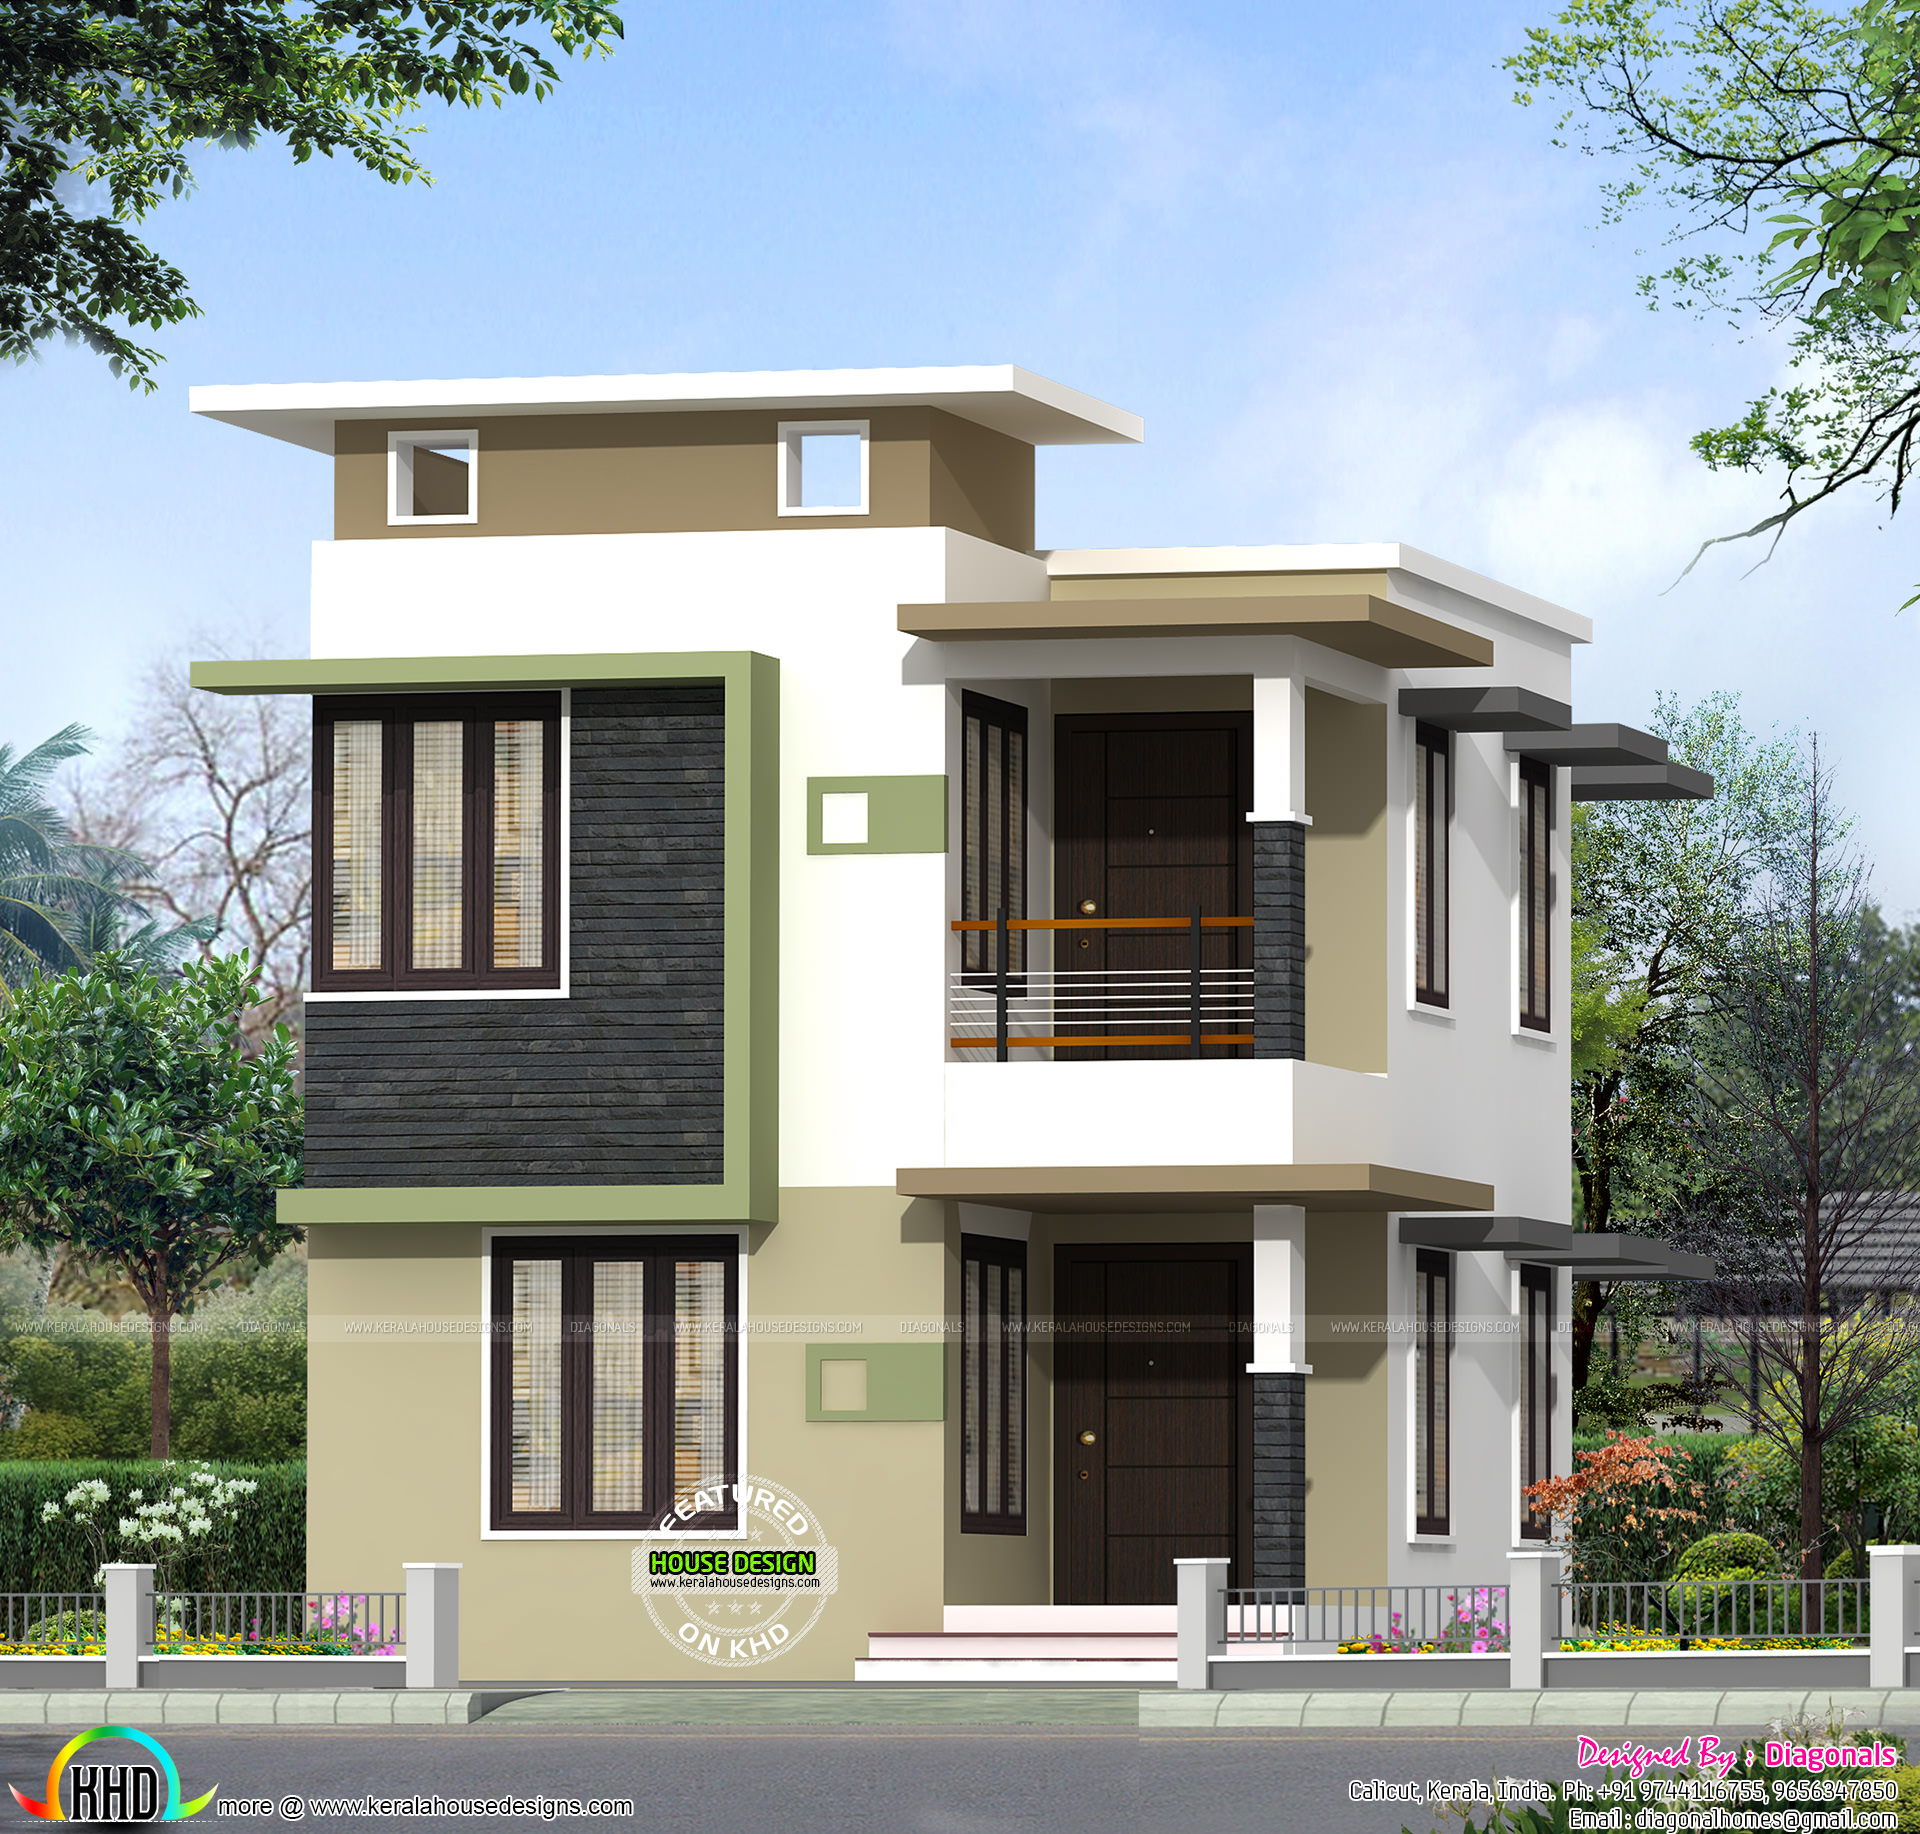 1631 sq ft budget flat roof home kerala home design and floor plans - Home design sheets ...